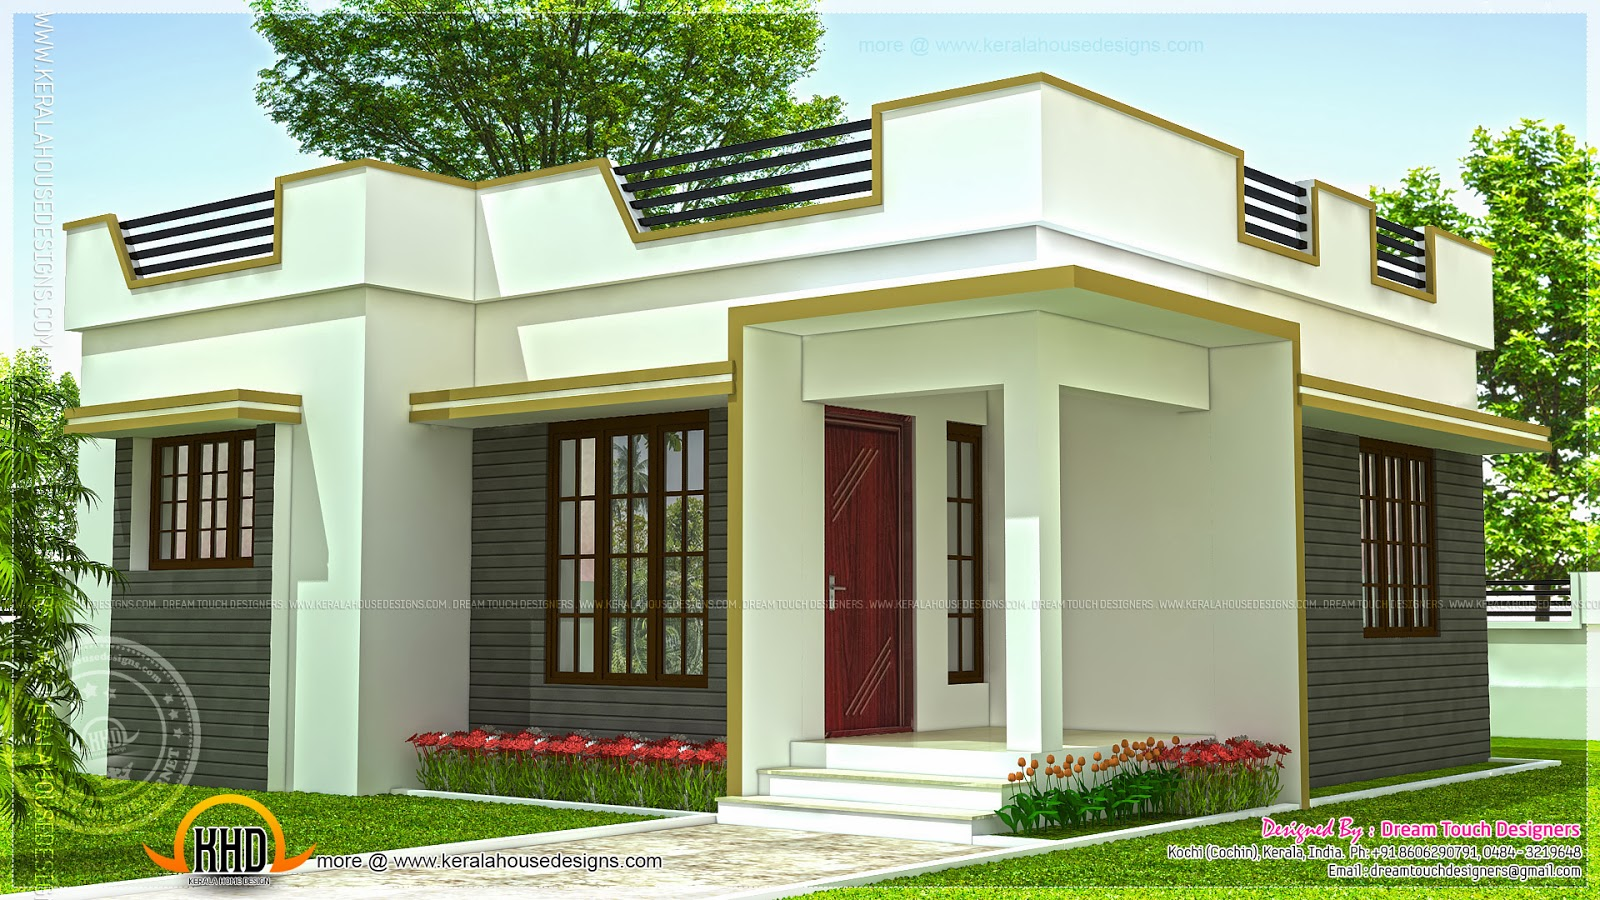 House design rooftop philippines - House Design Rooftop Philippines 17